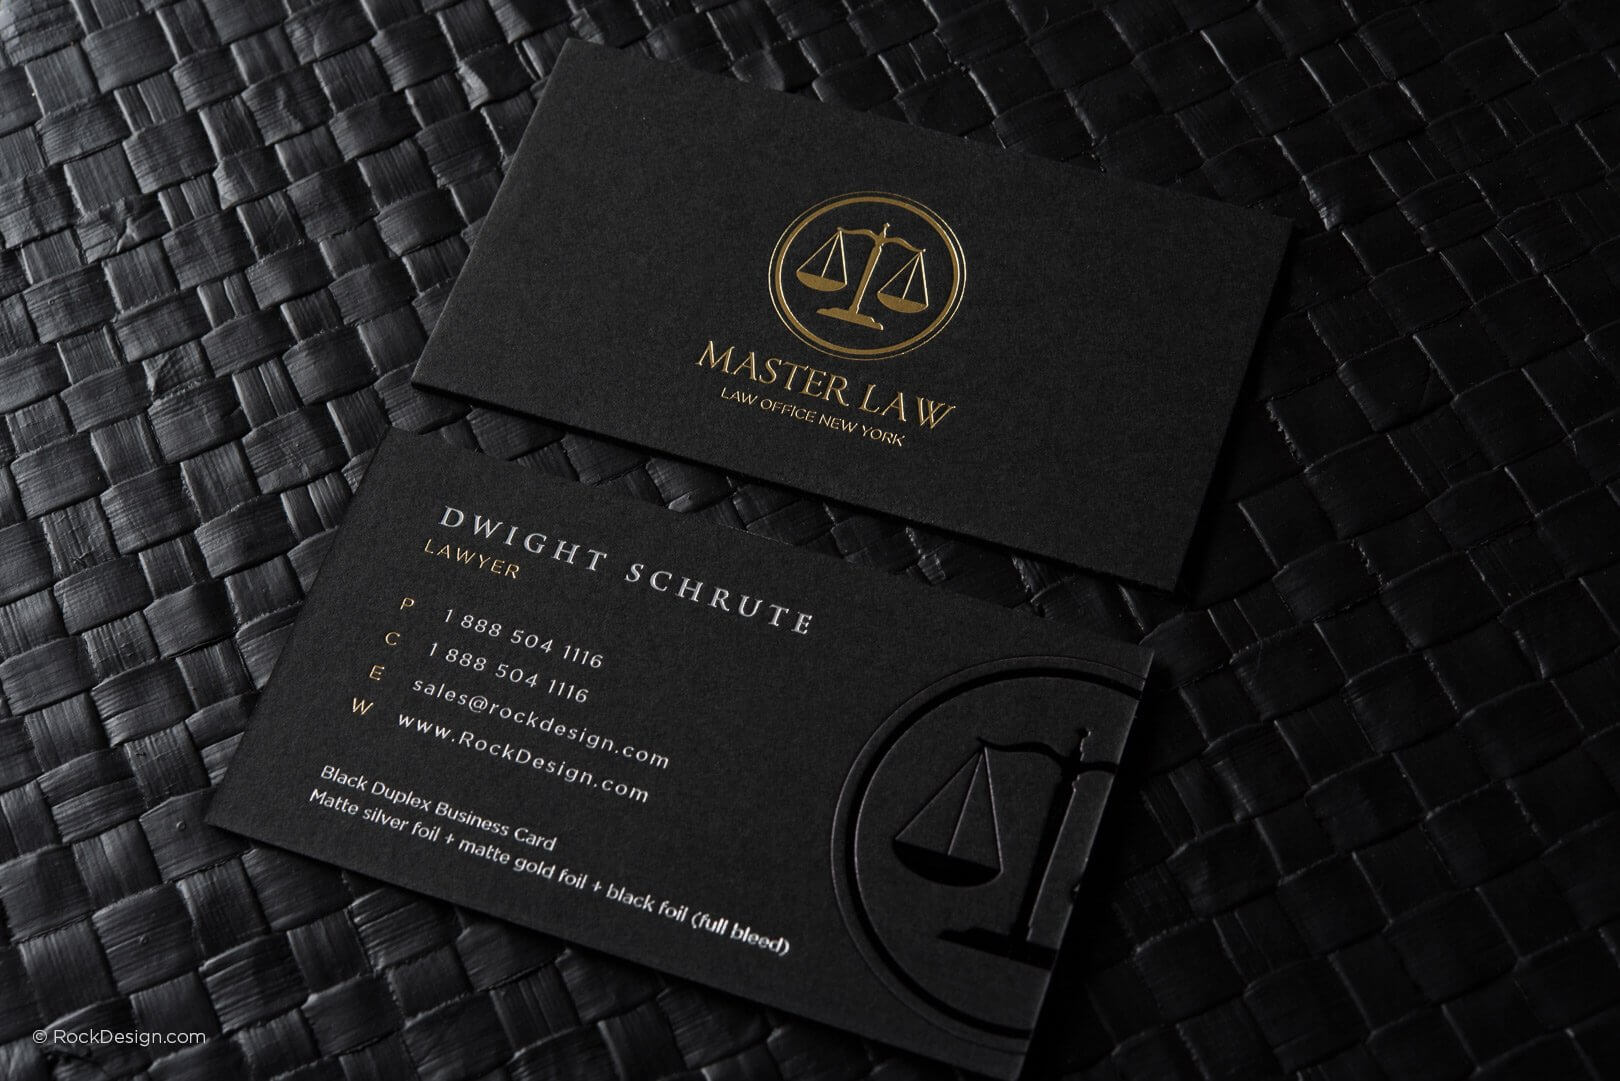 Free Lawyer Business Card Template   Rockdesign With Legal Business Cards Templates Free